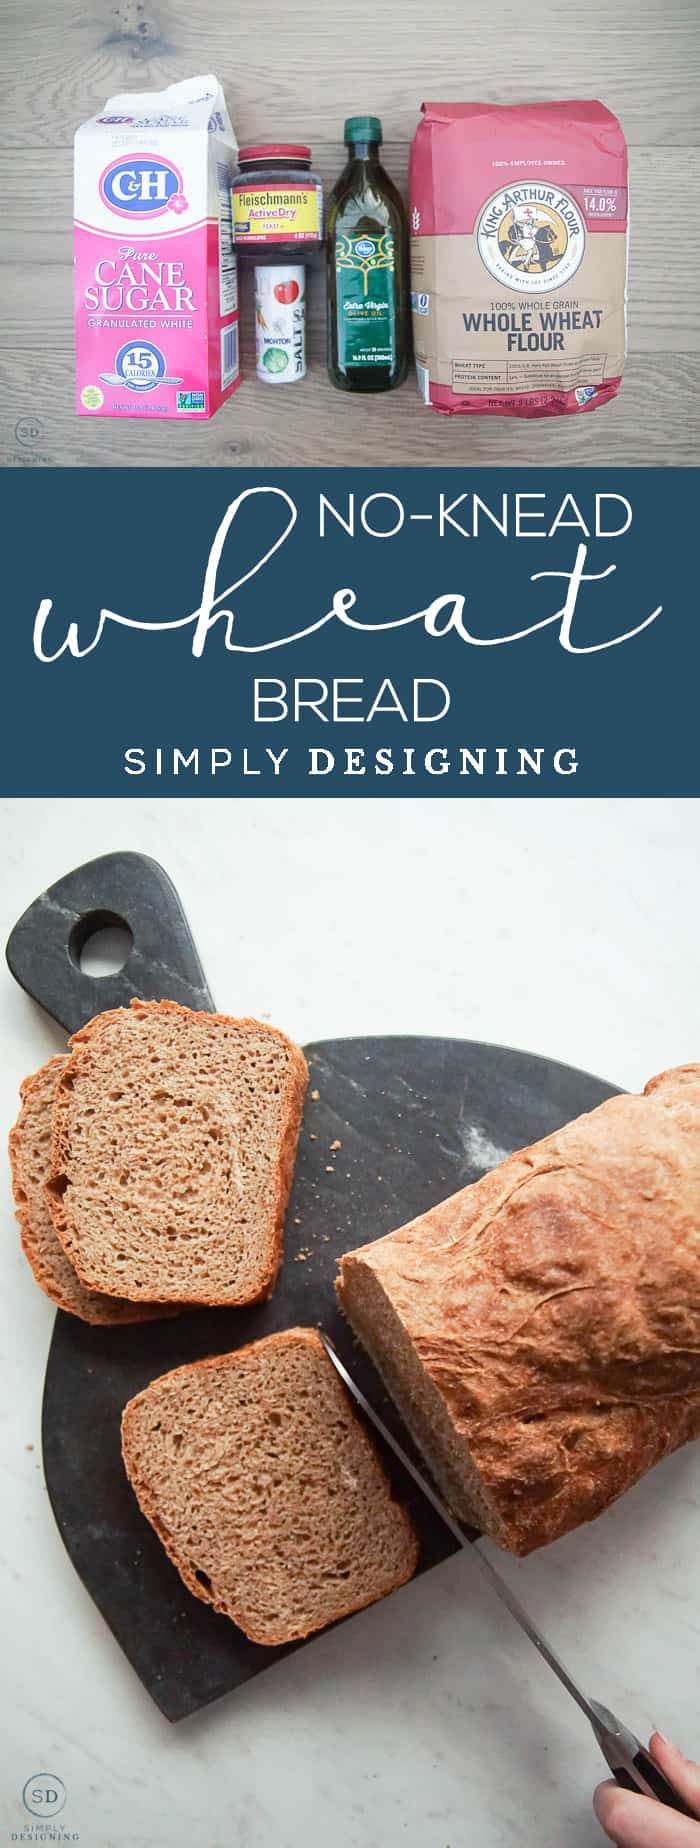 This Whole Wheat No Knead Bread is so simple to make only takes about 5 minutes of hands-on time and is so light fluffy and delicious